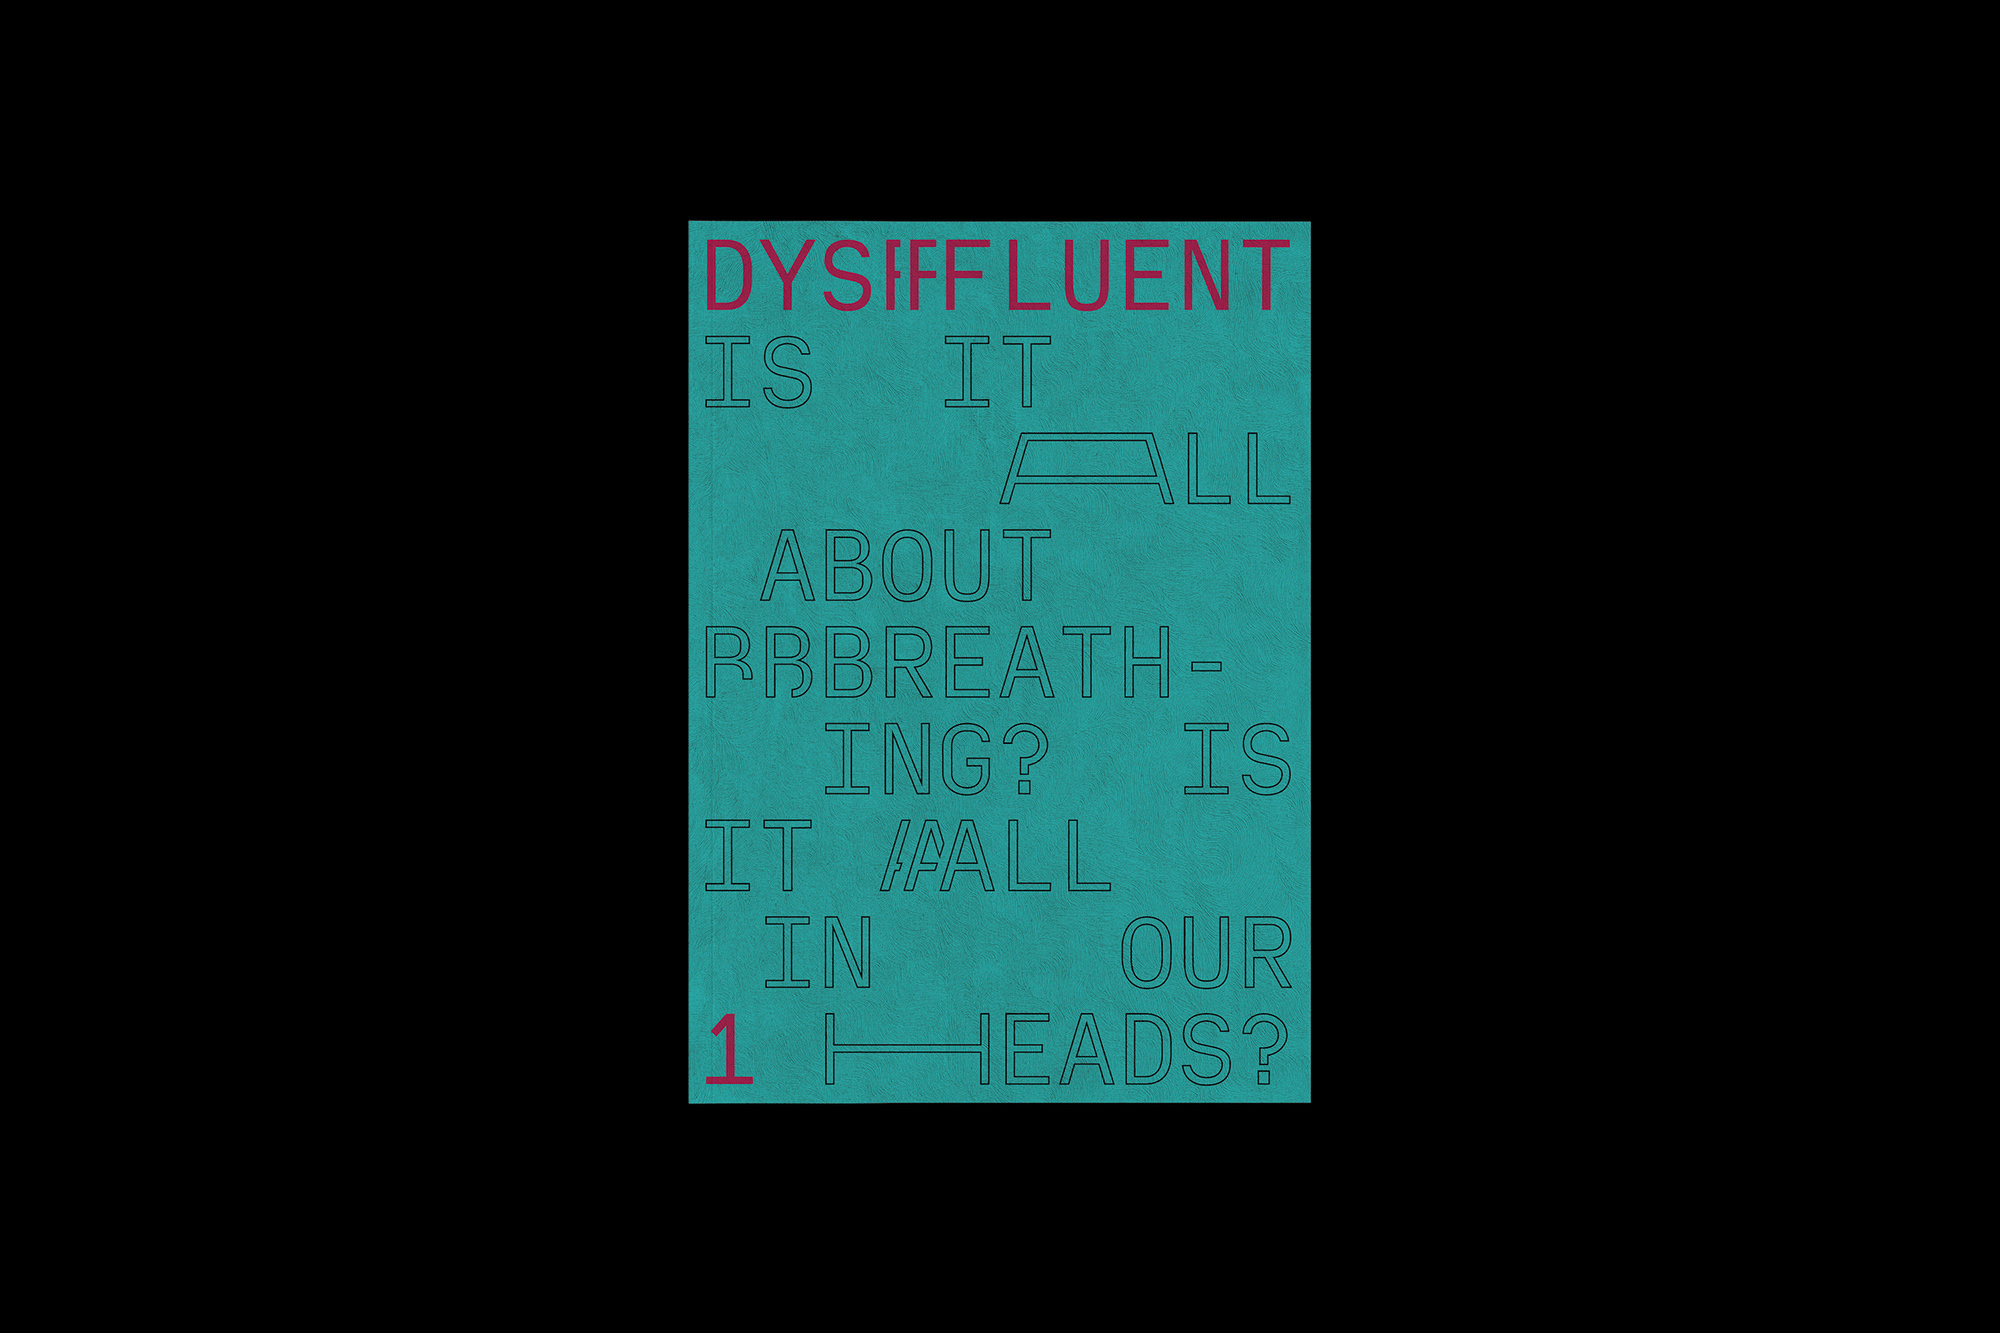 Cover image: Dysfluent Issue 1